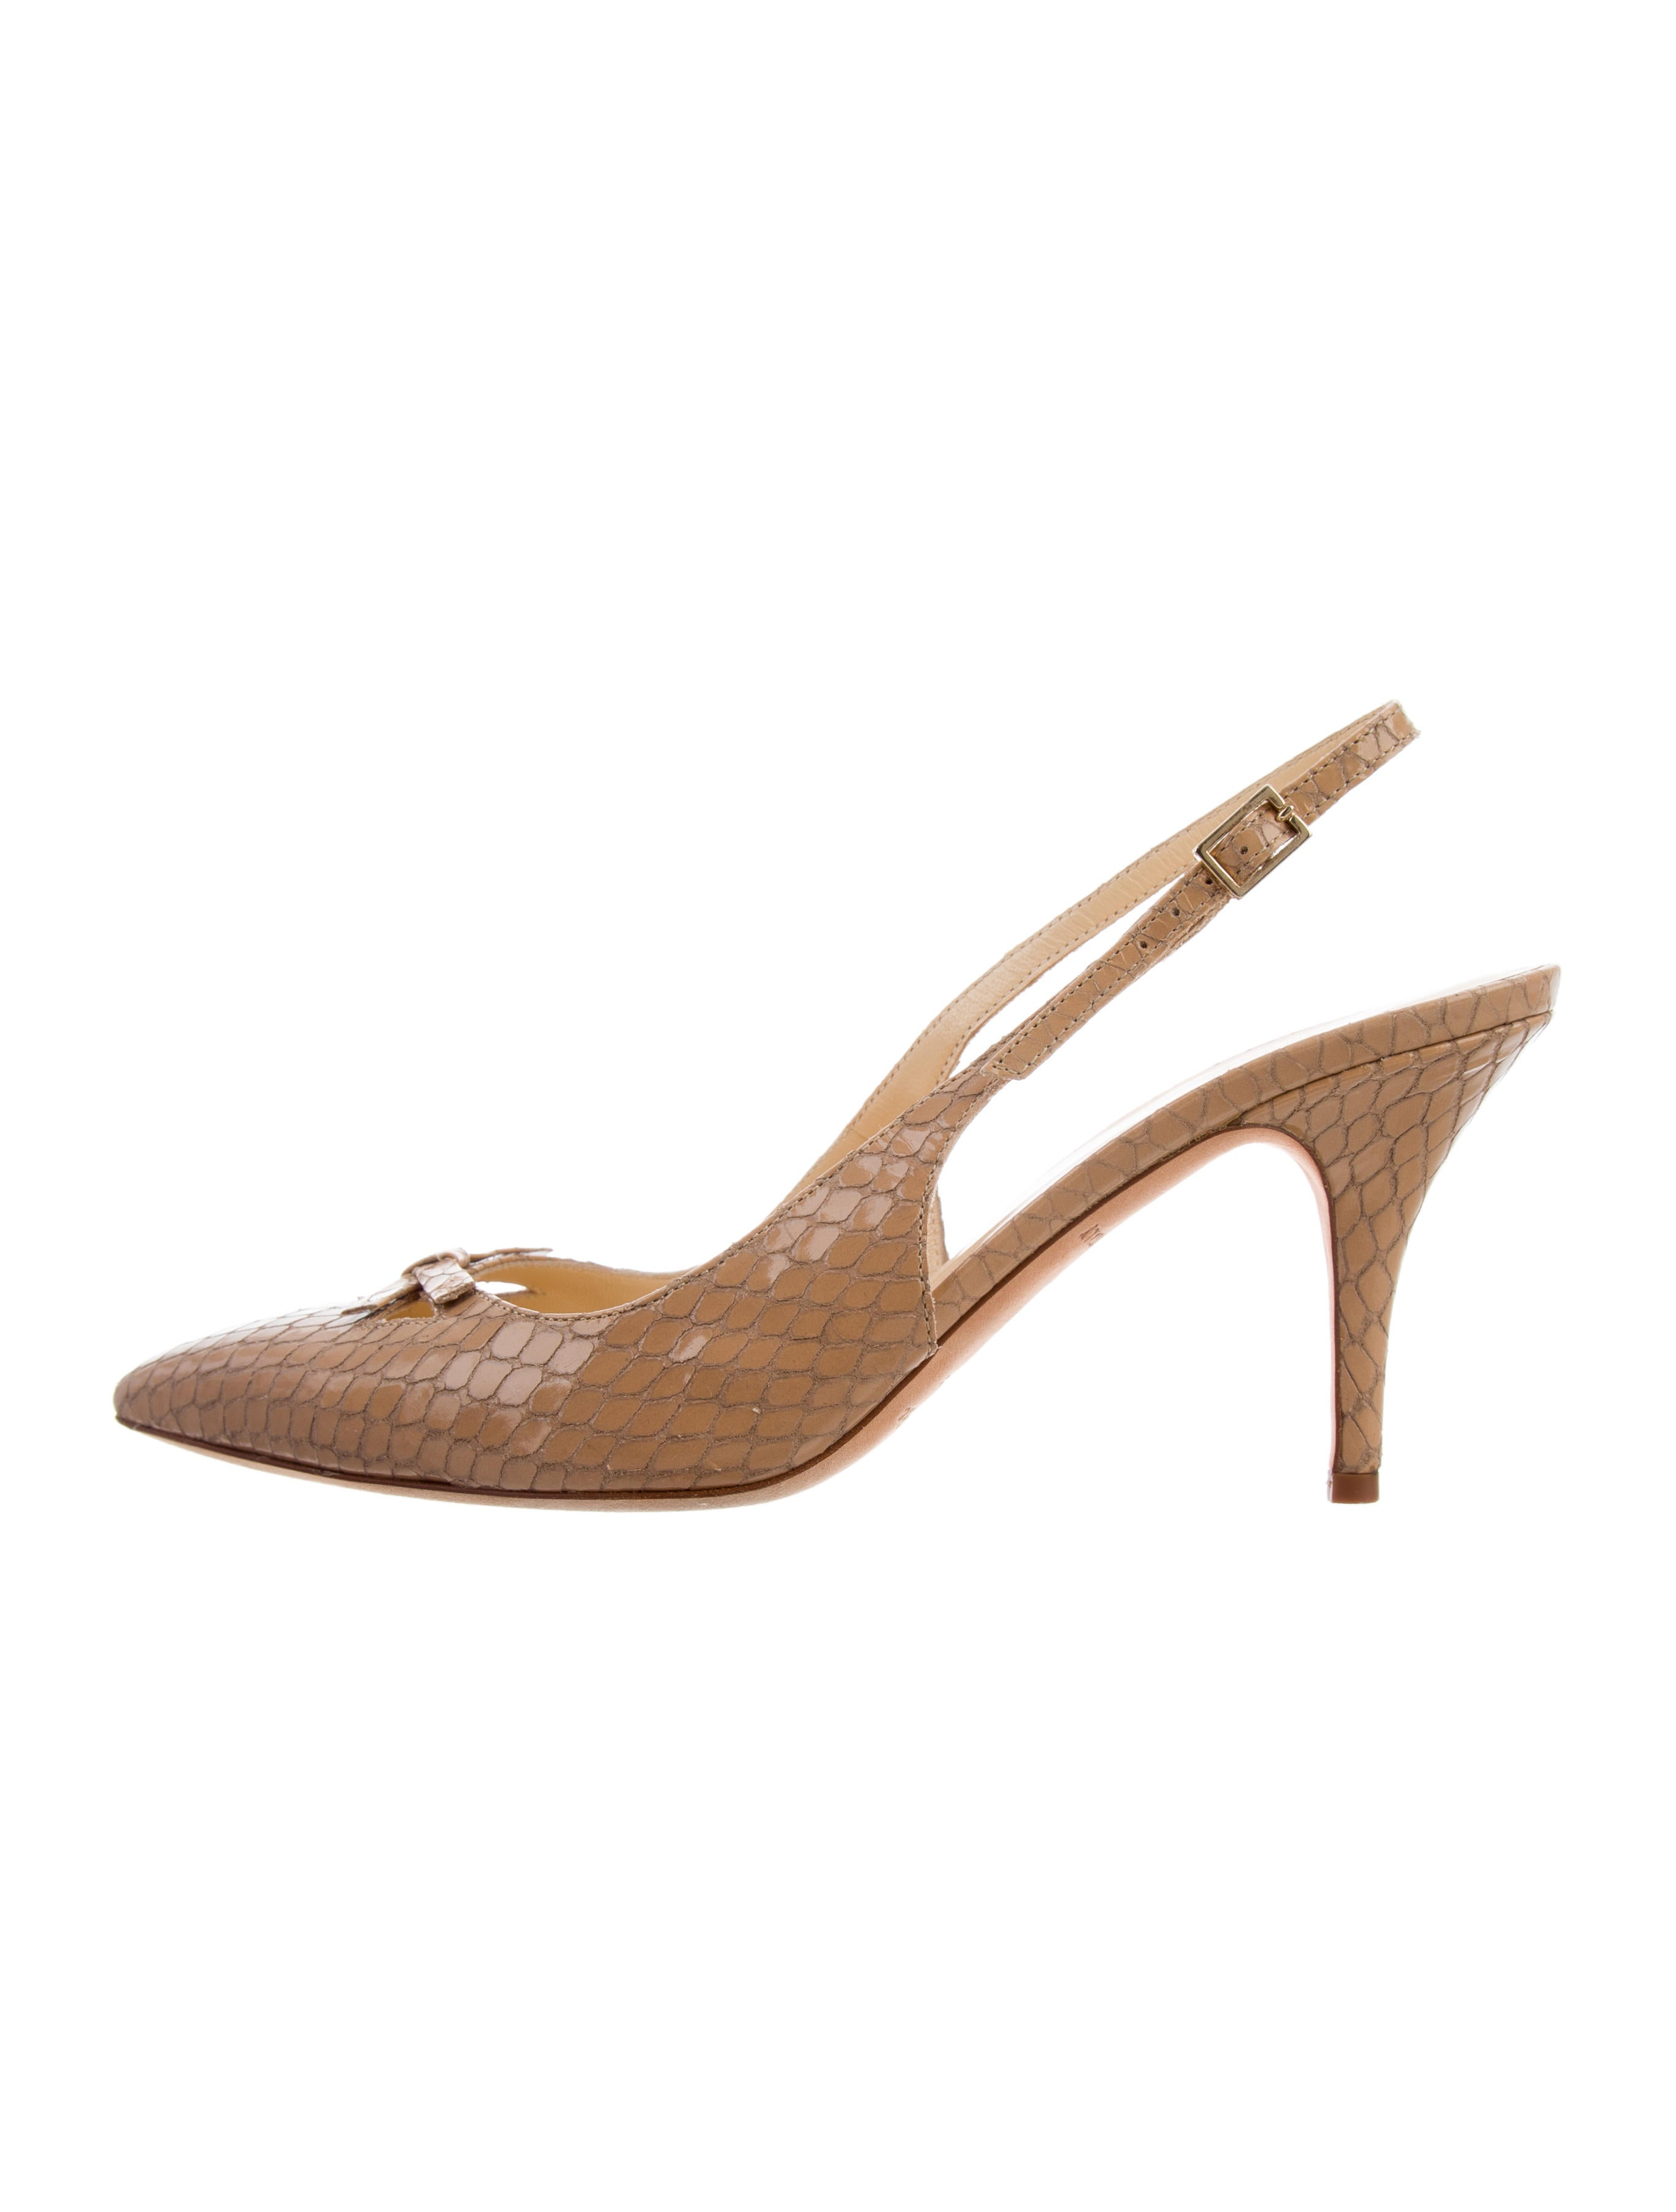 Kate Spade New York Embossed Leather Pumps cheap for sale free shipping visit new under $60 sale online excellent cheap price latest collections sale online Eyr4gs